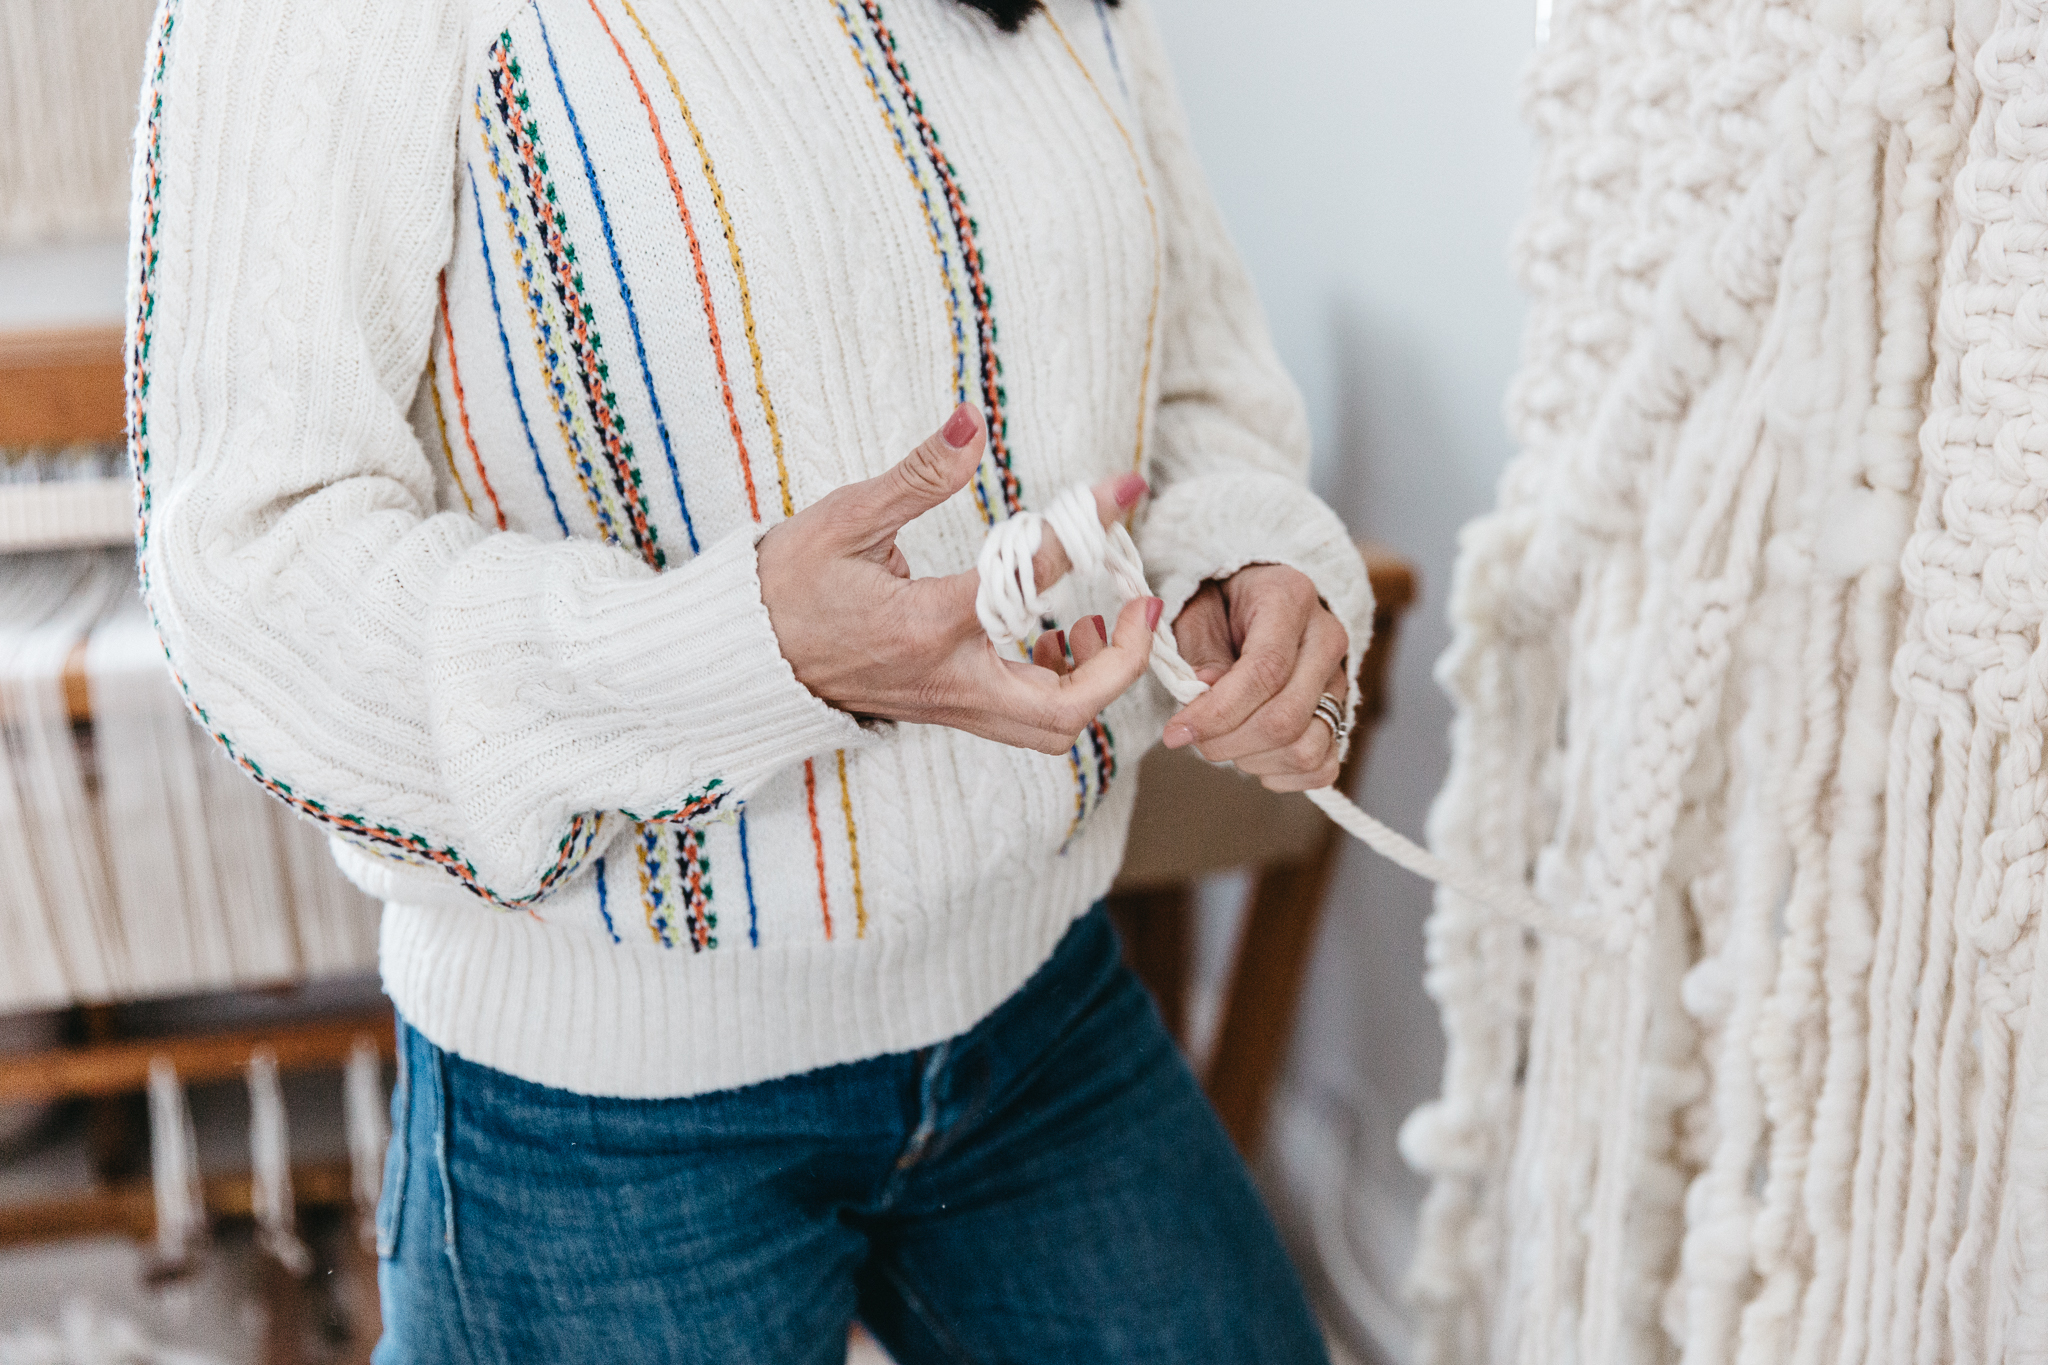 Rope Modern Macrame Artist Elsie Goodwin Reform Fibers Hands On Collective by Joy Theory Co Orange County Photographer